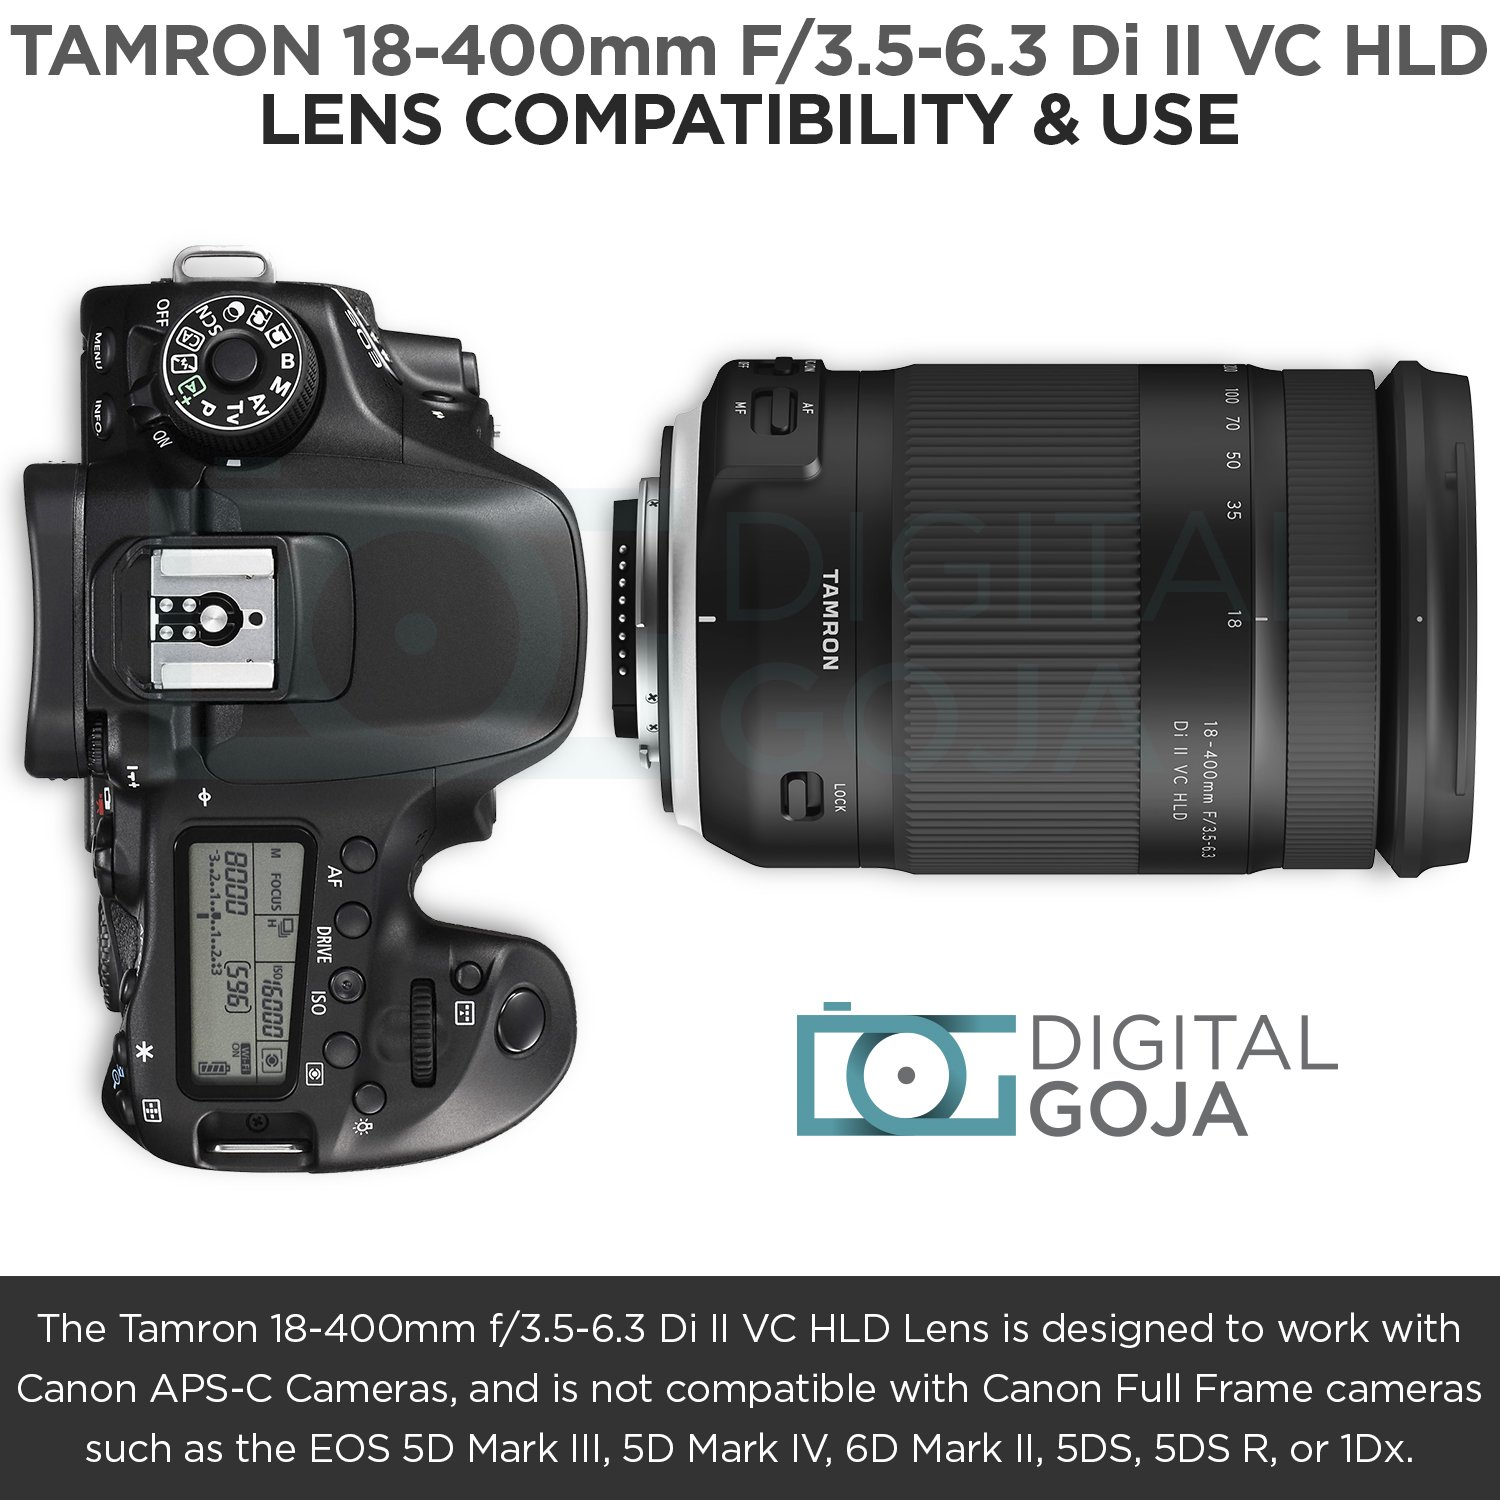 Tamron 18-400mm f/3.5-6.3 Di II VC HLD Lens for Canon DSLR Cameras w/Advanced Photo and Travel Bundle (Tamron 6 Year Limited USA Warranty) by Tamron (Image #3)